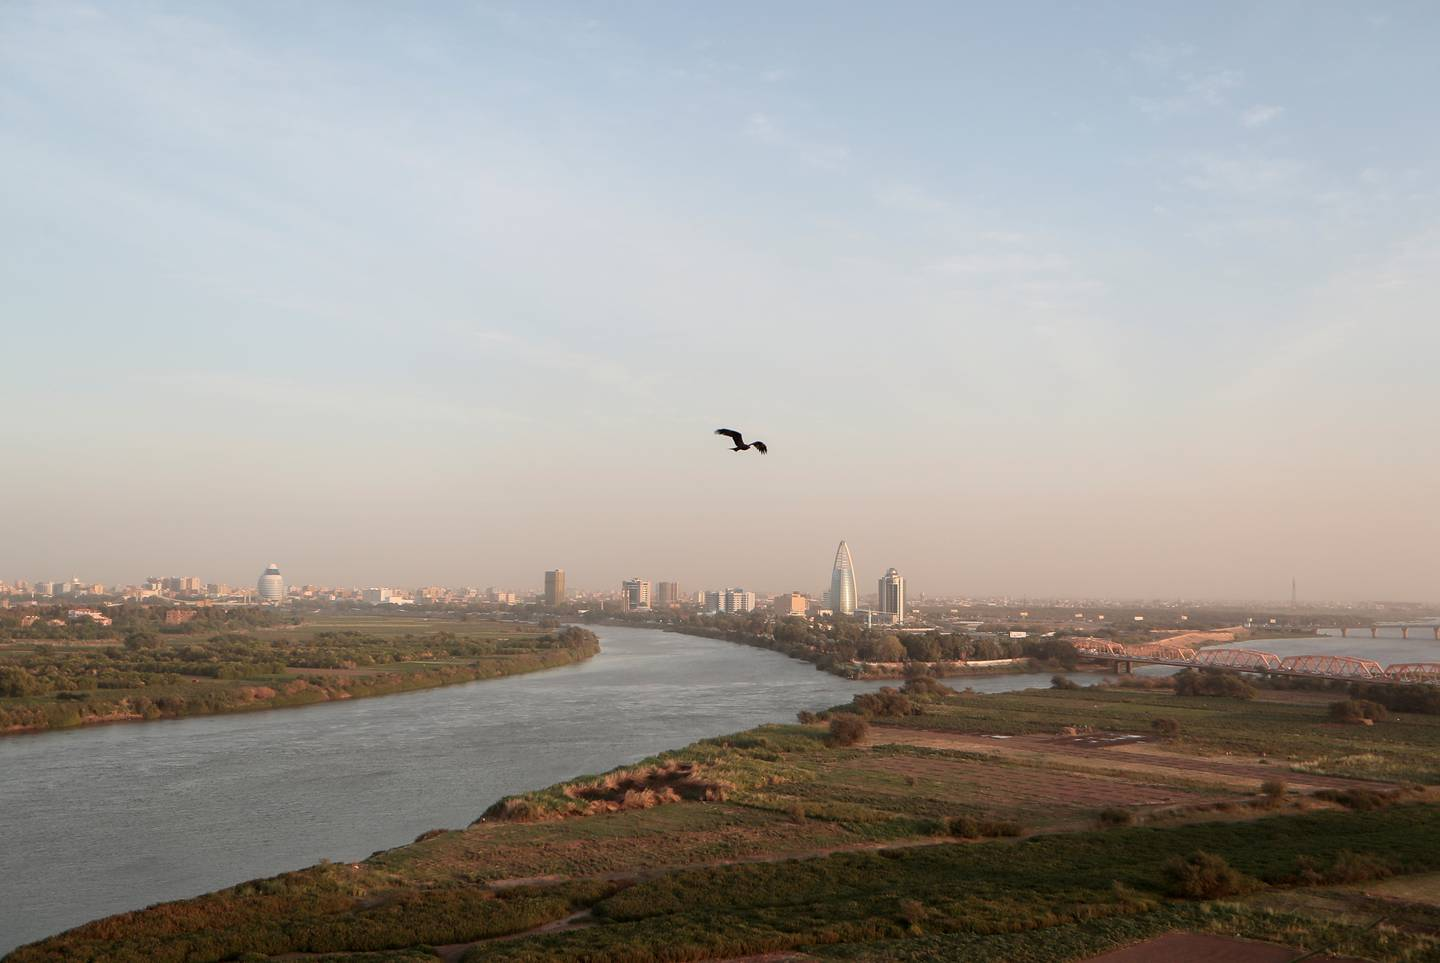 FILE PHOTO: A bird flies over the convergence between the White Nile river and Blue Nile river in Khartoum, Sudan, February 17, 2020. REUTERS/Zohra Bensemra/File Photo